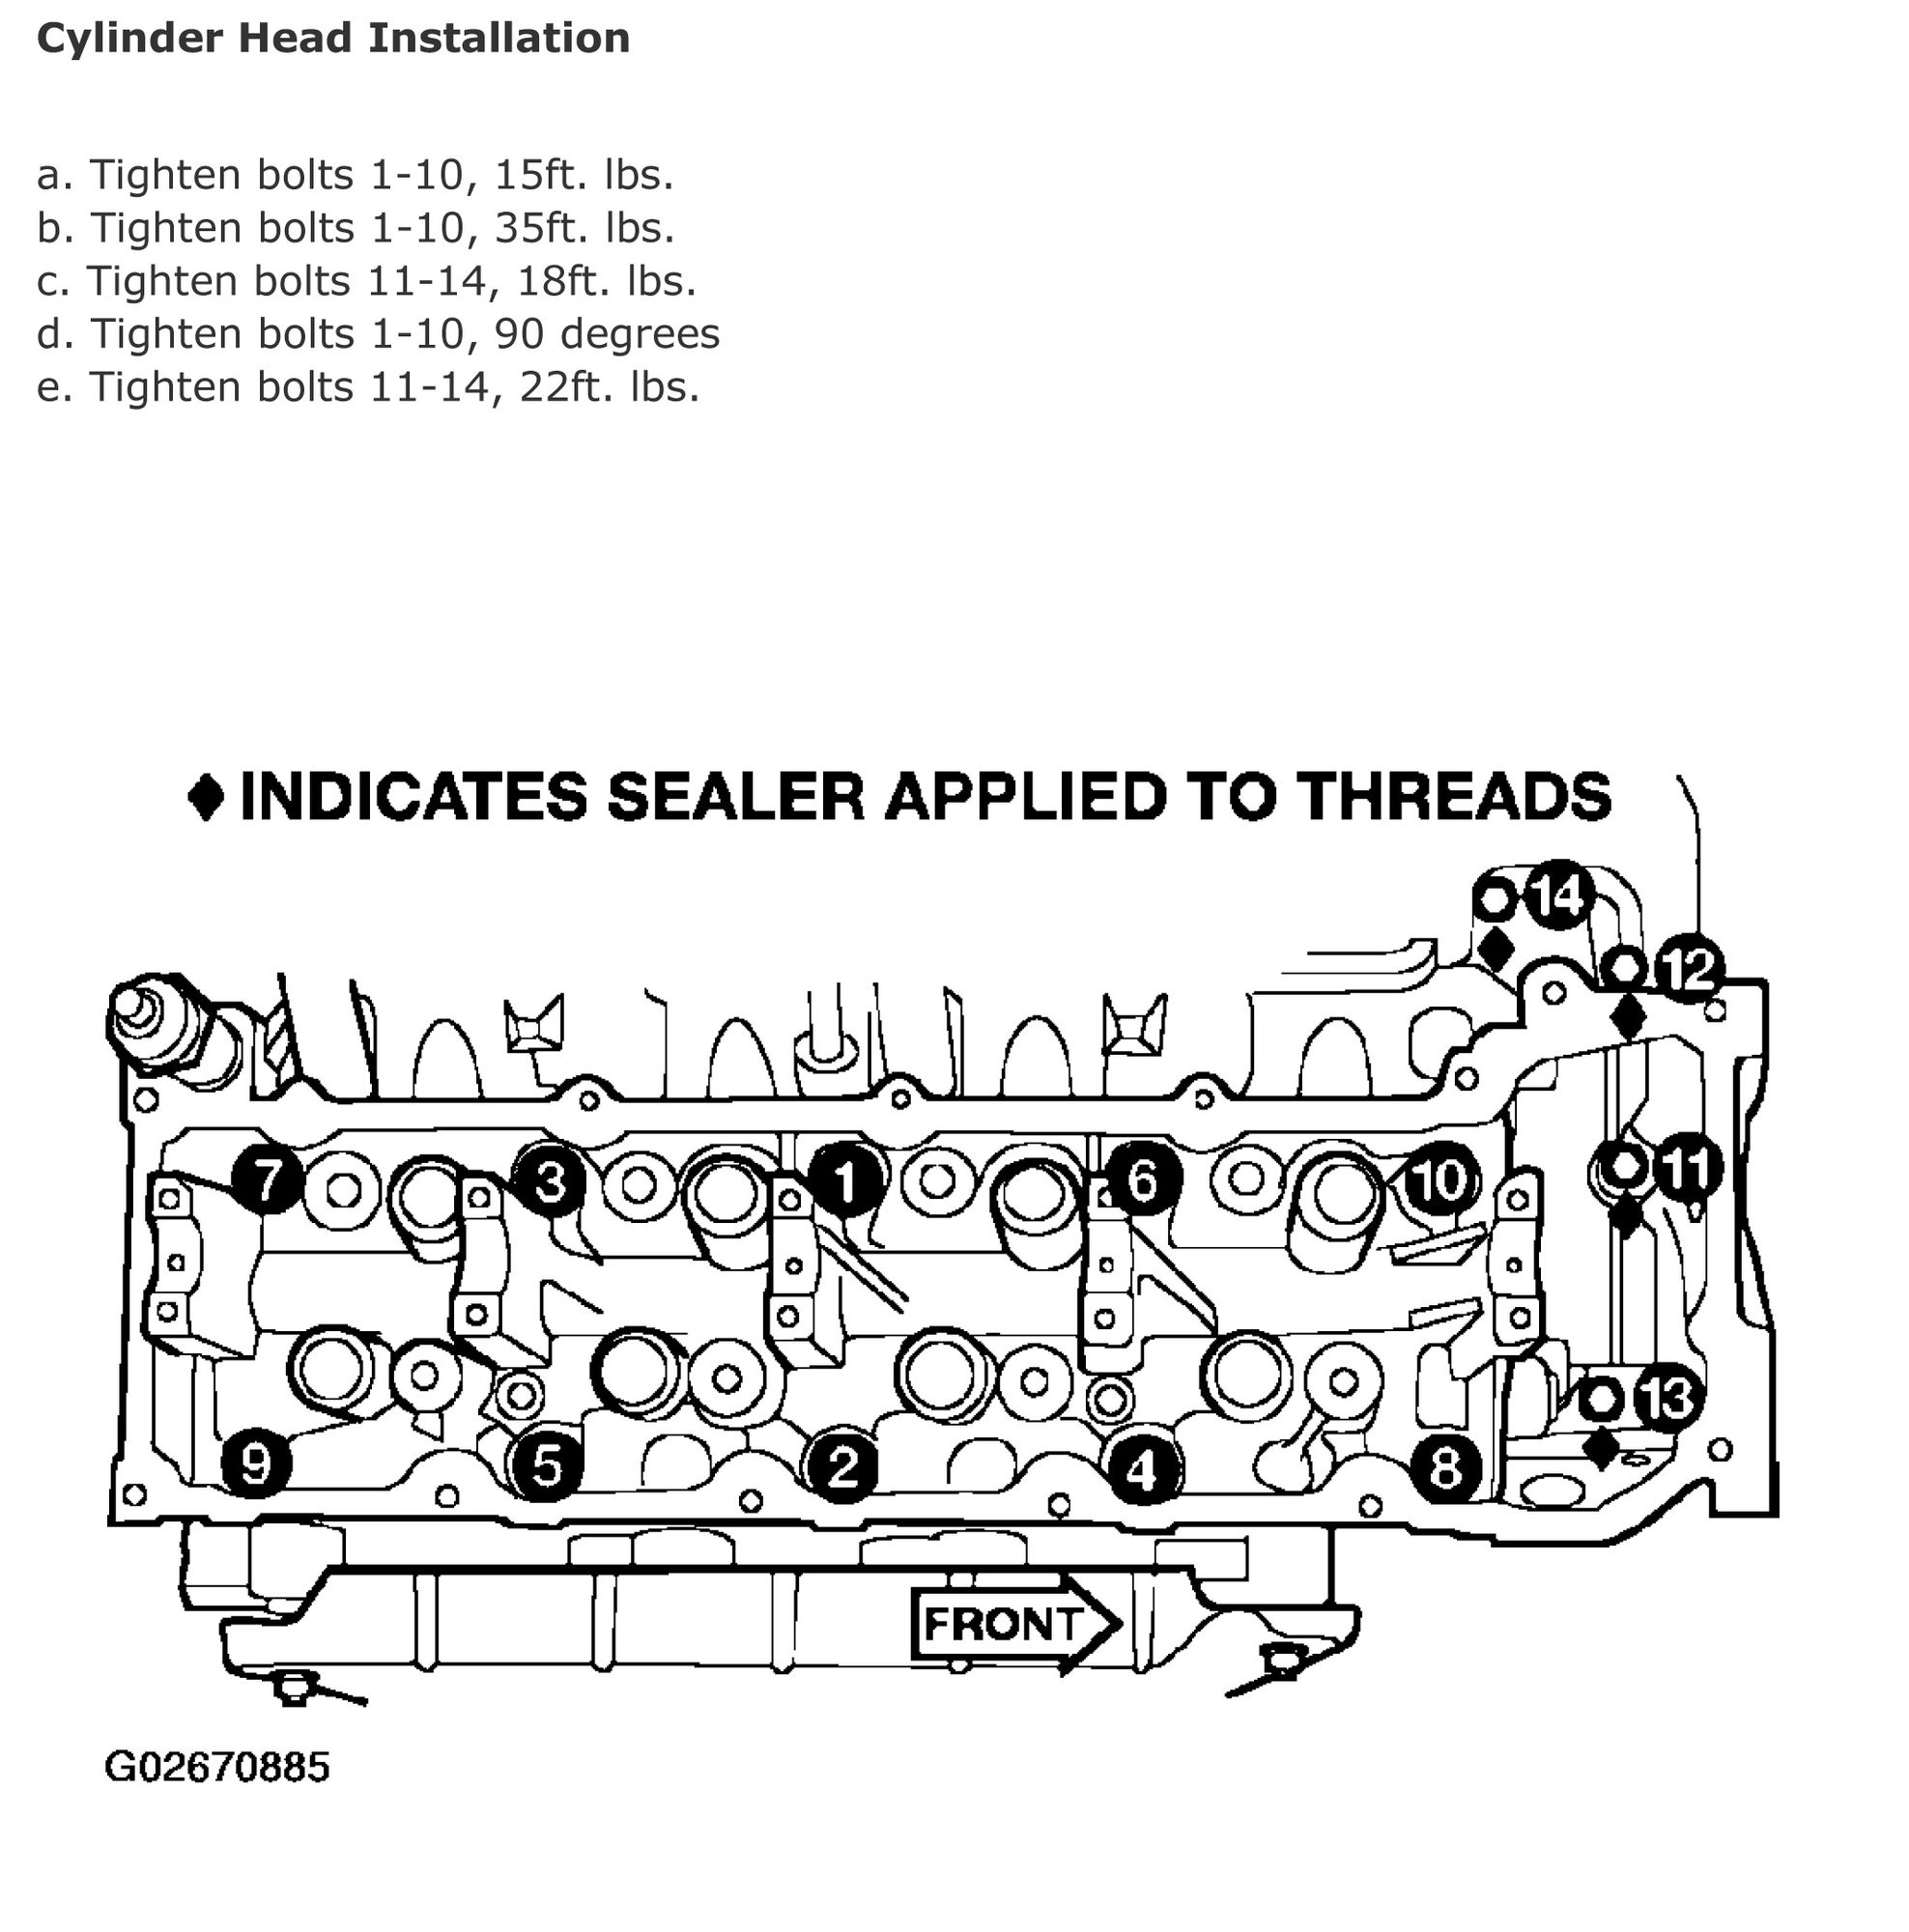 2000 dodge intrepid engine diagram wiring diagram photos for help